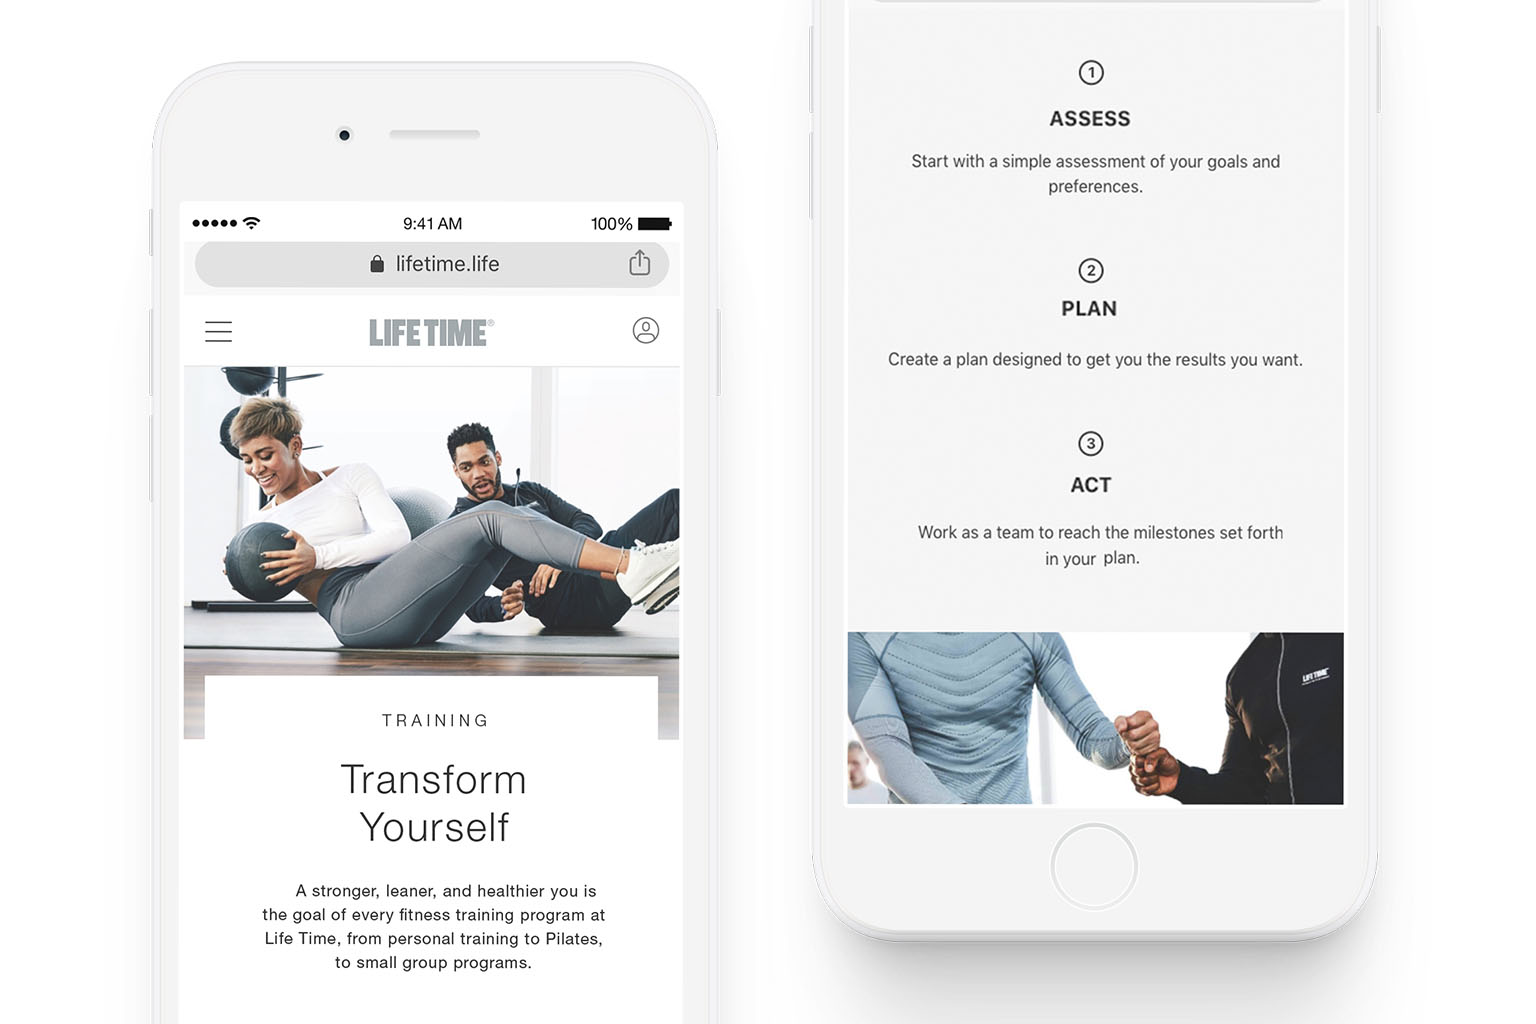 Life Time visual branding examples shown on iPhones